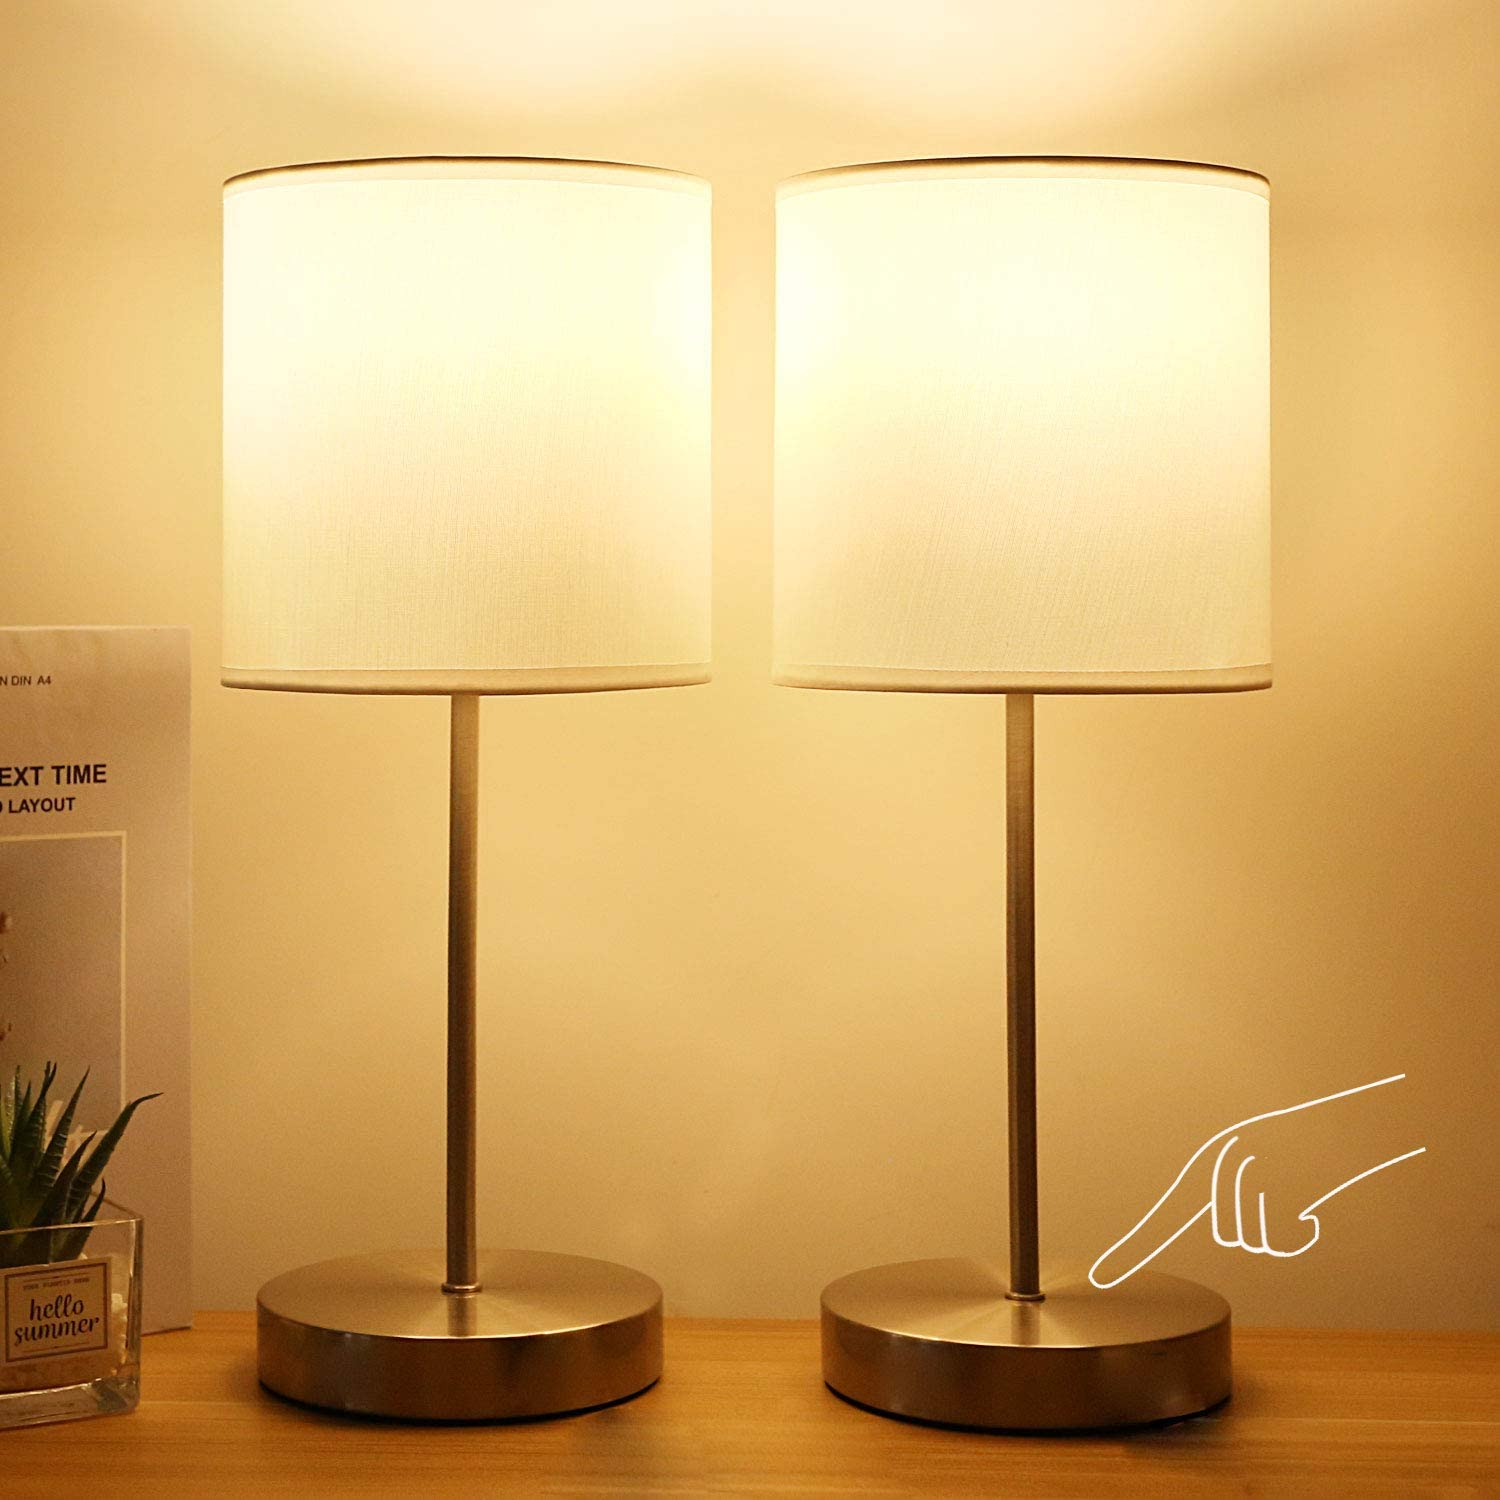 Touch Table Lamps for Bedroom, 3-Way Dimmable Modern Small Bedside Lamp for Nightstand for Kids Reading, Living Room & Office, w White Cylindrical Shade and Metal Base, Bulb Included